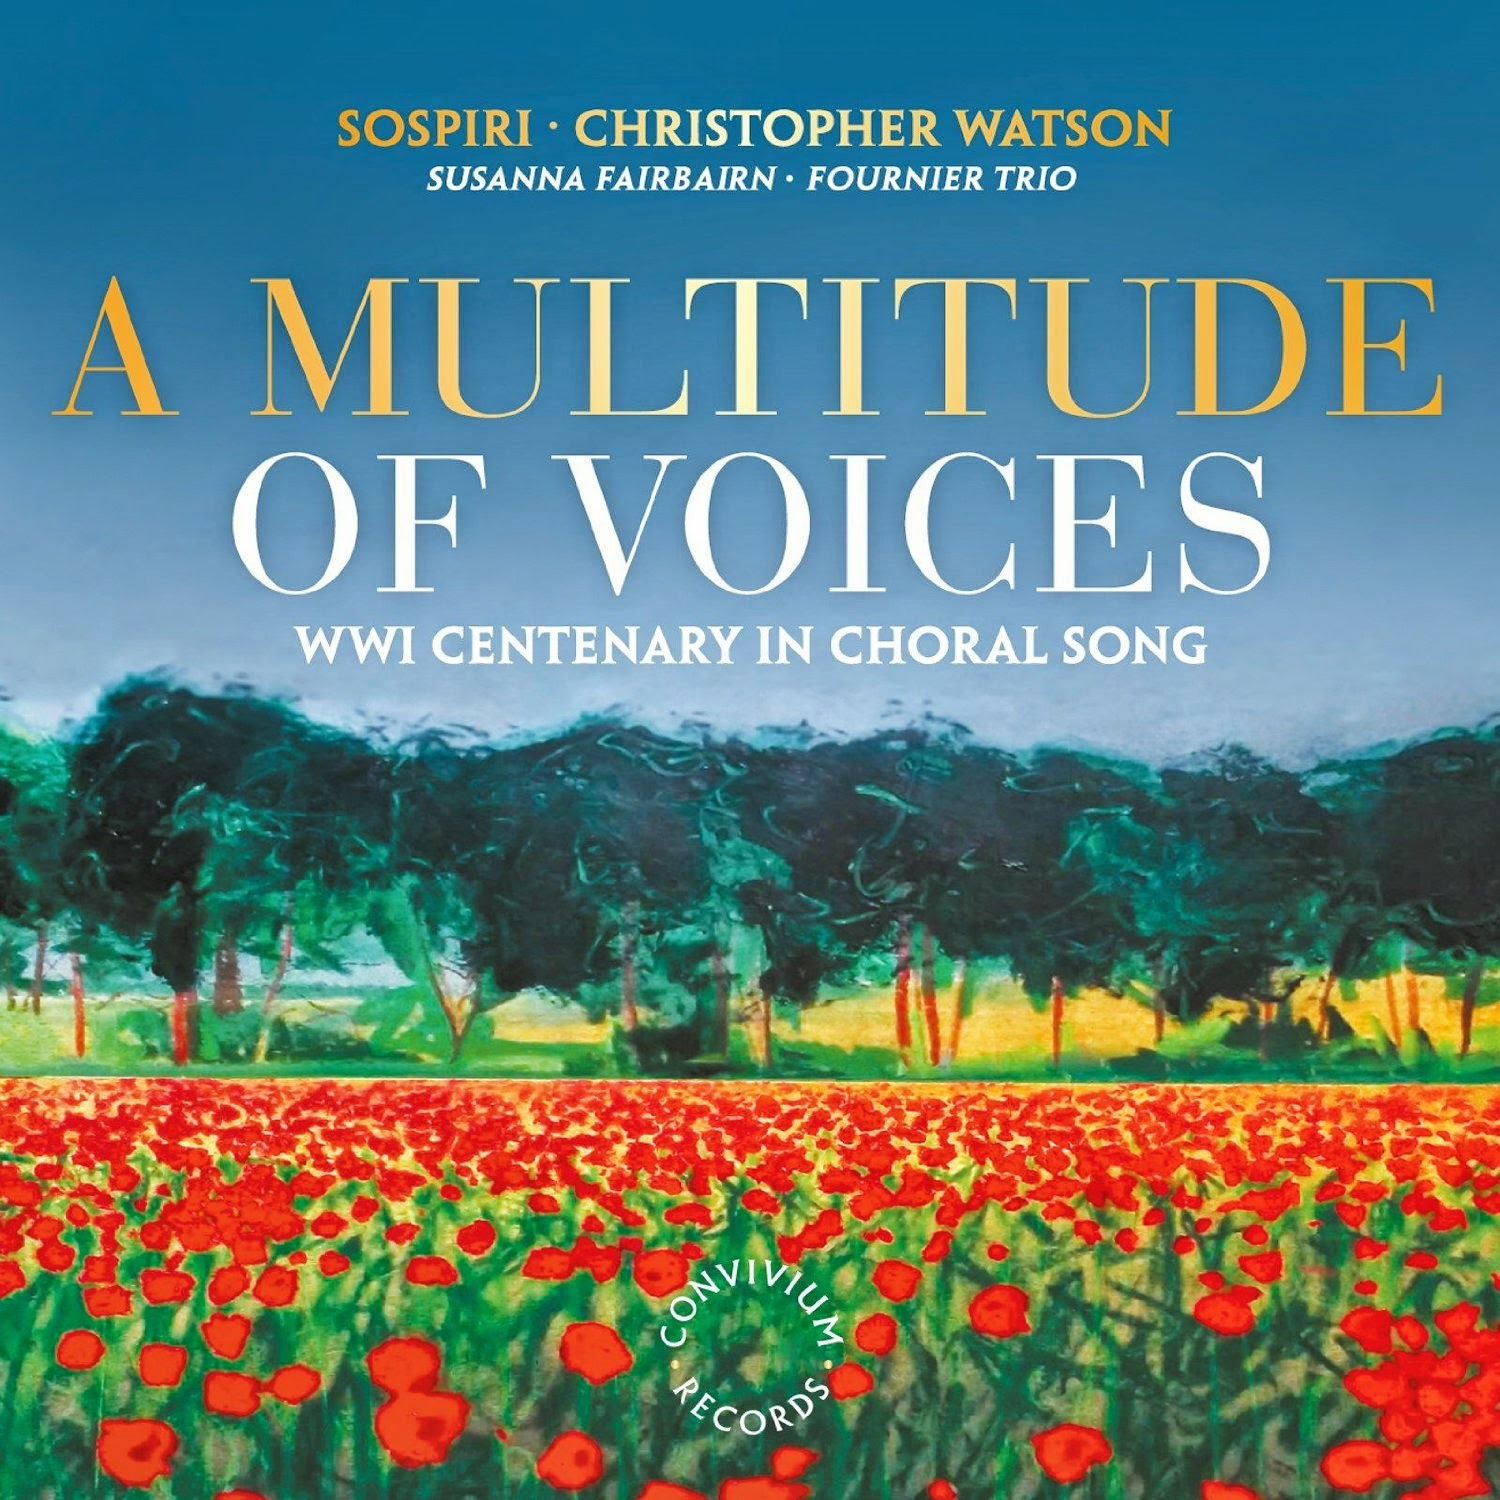 A Multitude of Voices